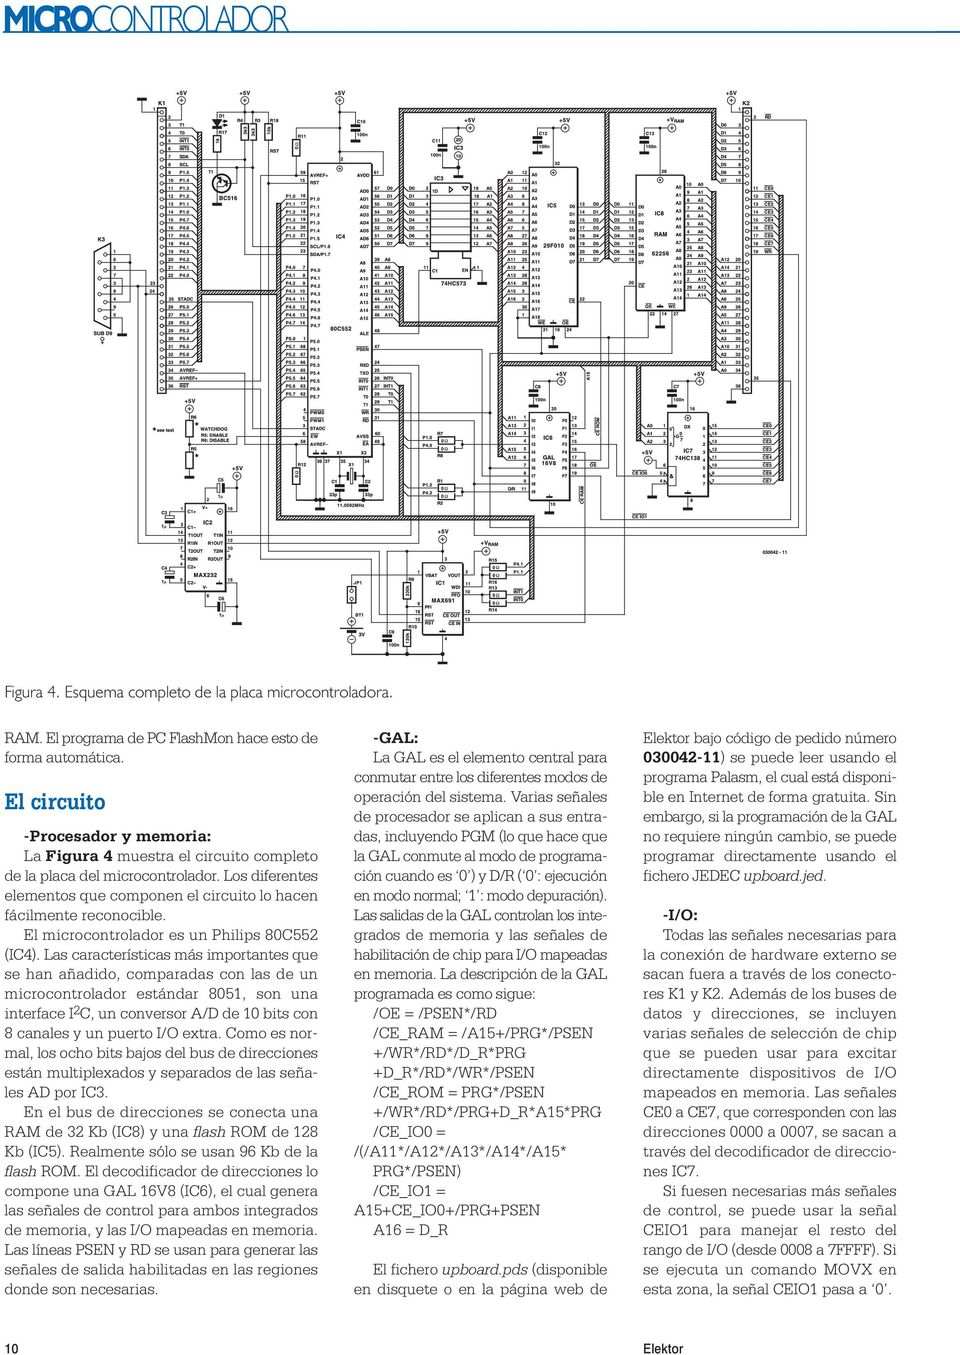 El microcontrolador es un Philips 80C552 (IC4).